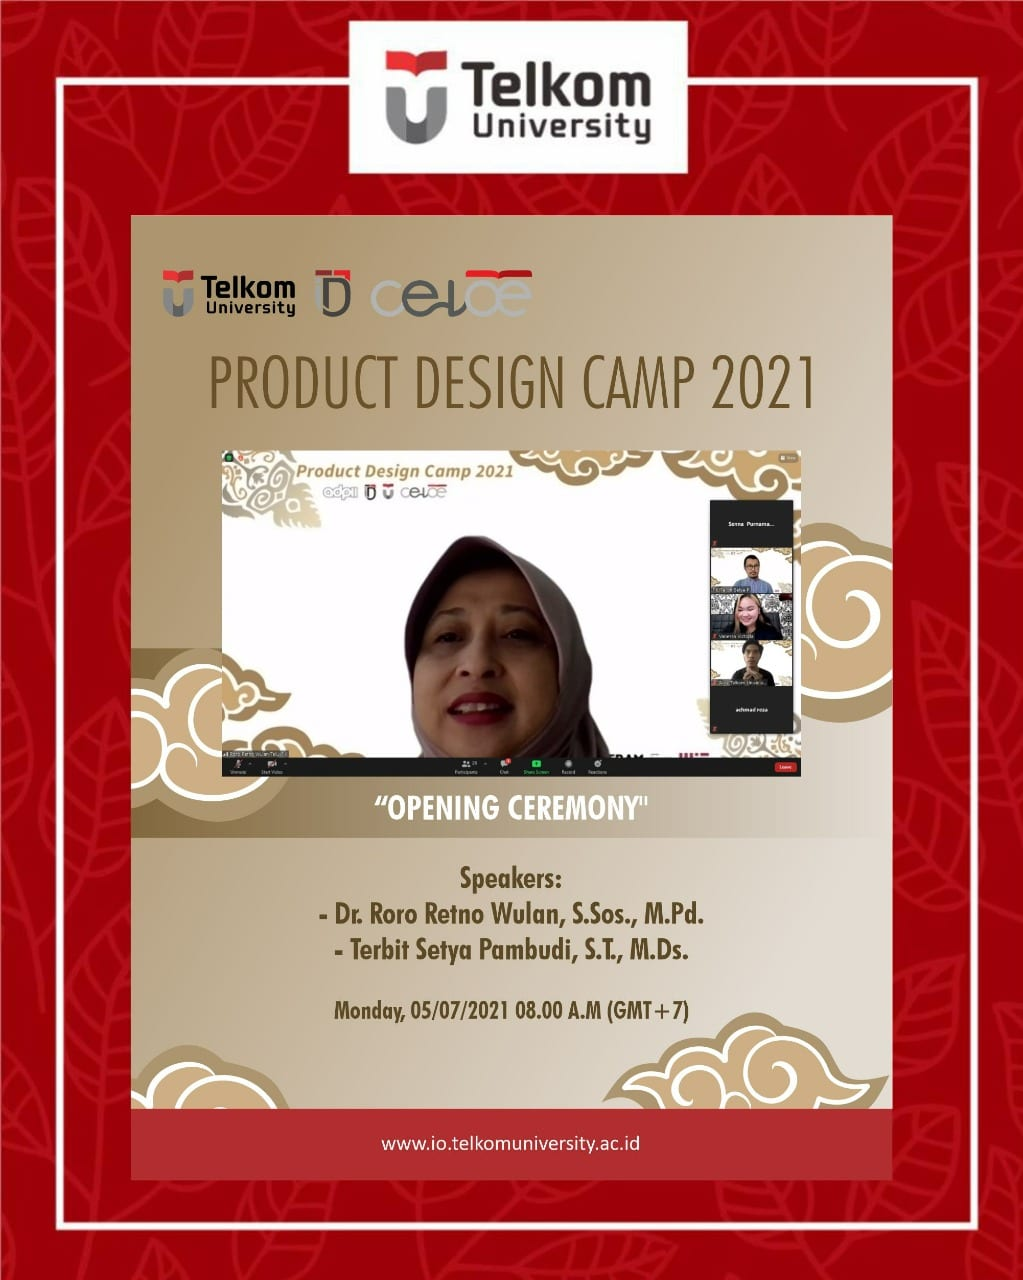 Product Design Camp 2021: Bringing Local to Global